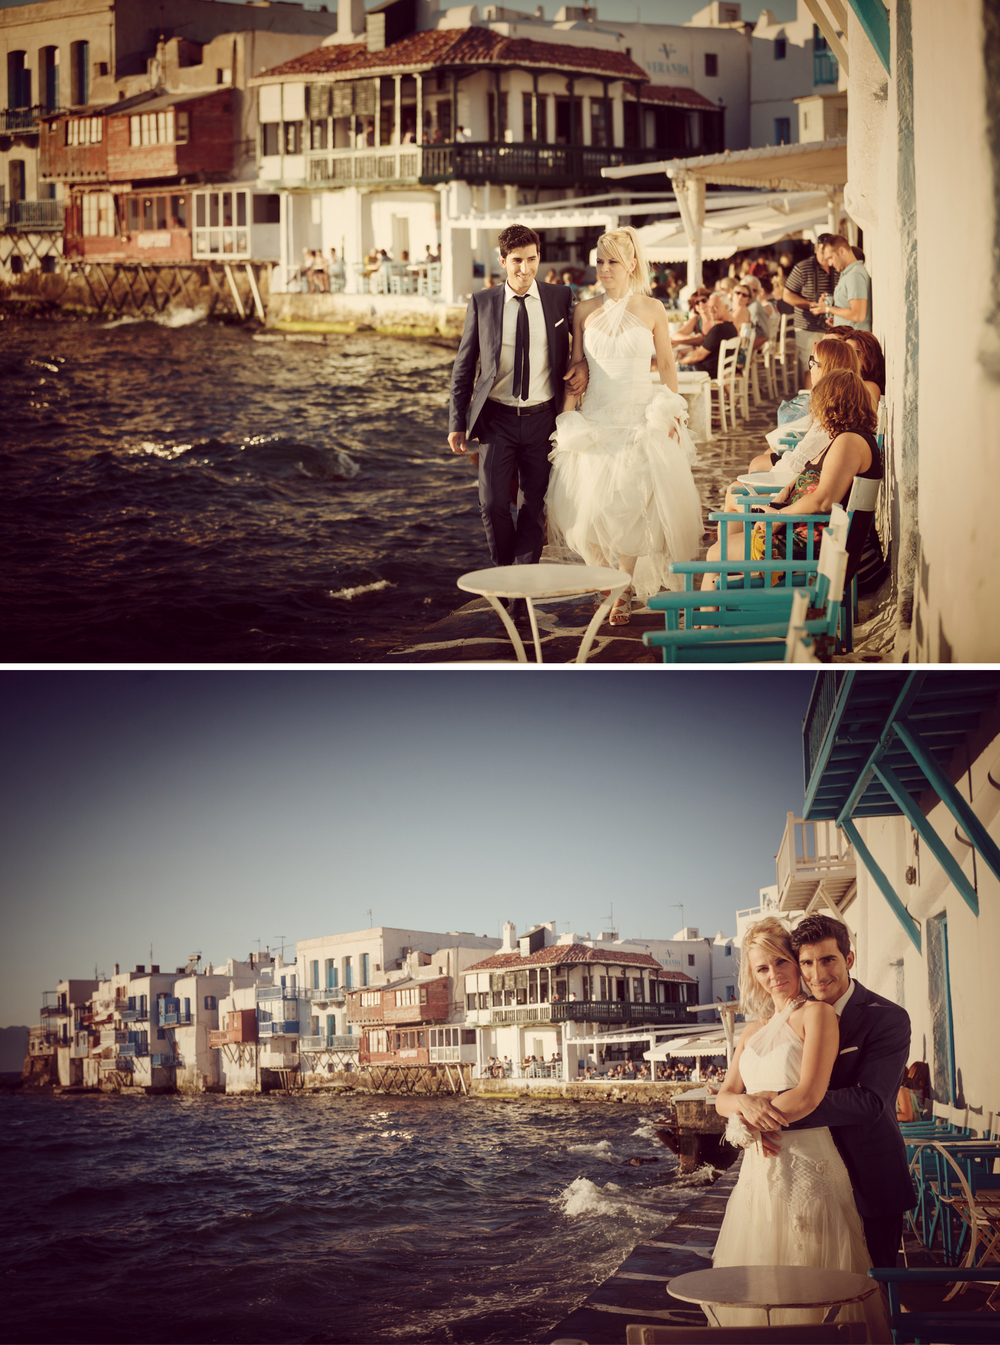 ANDRIOPOULOS WEDDINGS MYKONOS MYK_264.jpg